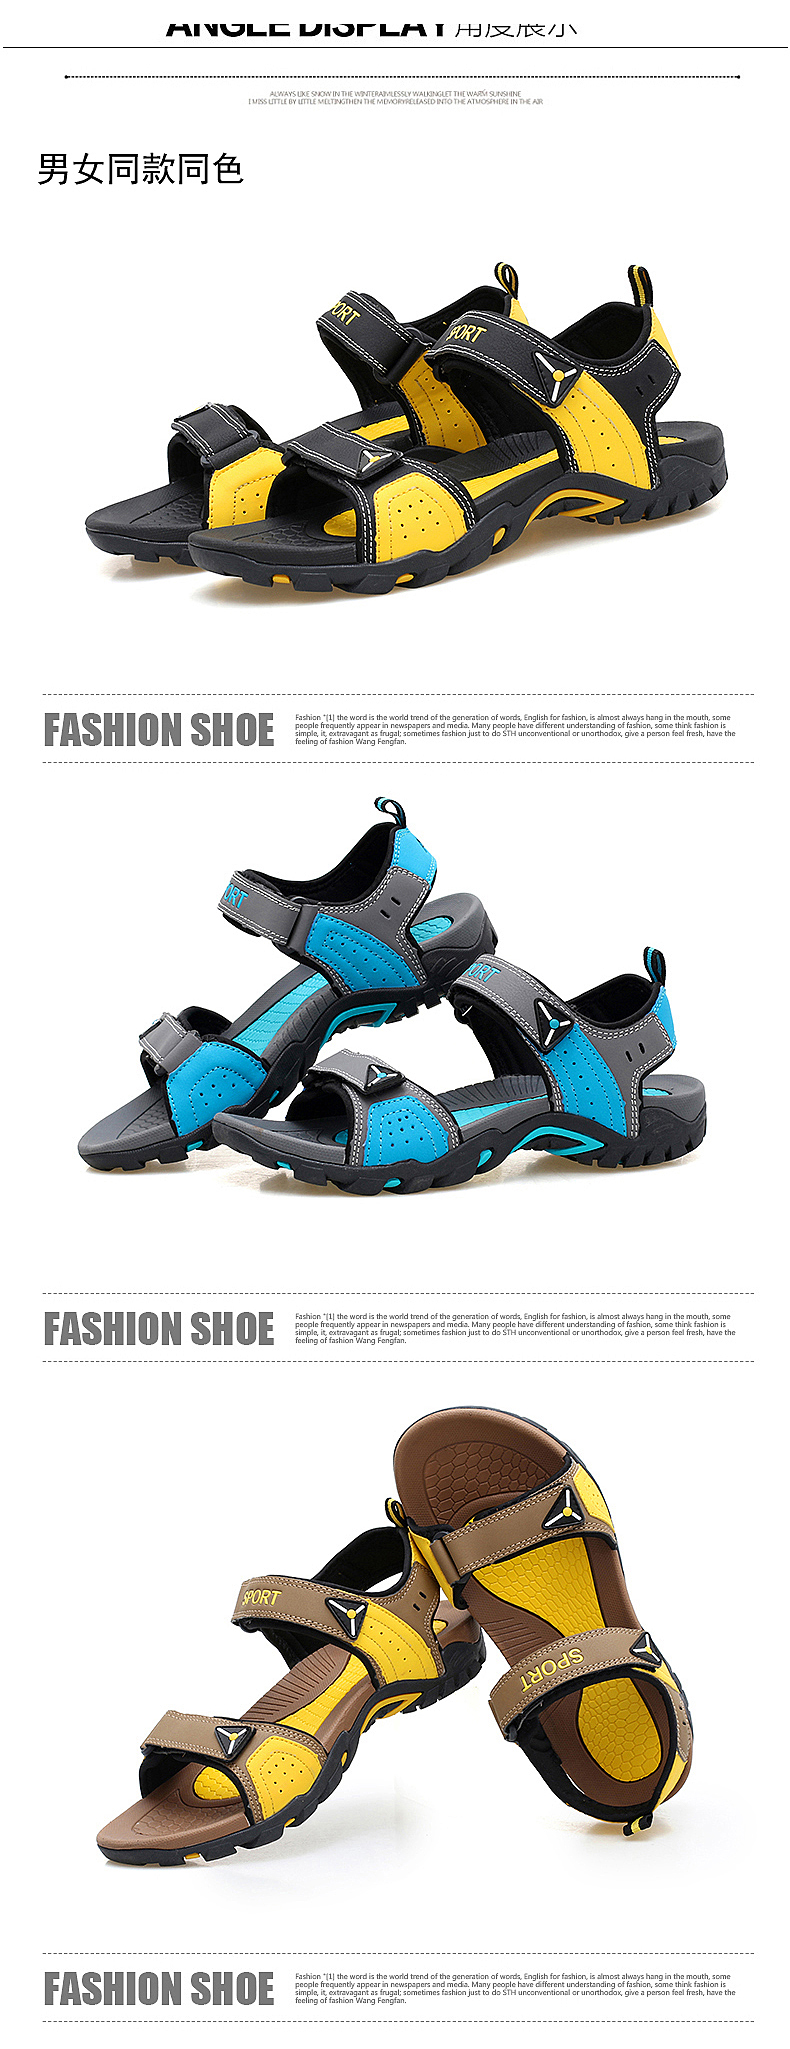 Abstract Wolf Slippers for Boy Girl Casual Sandals Shoes Creative 3D Printed Graphic Hipster Design